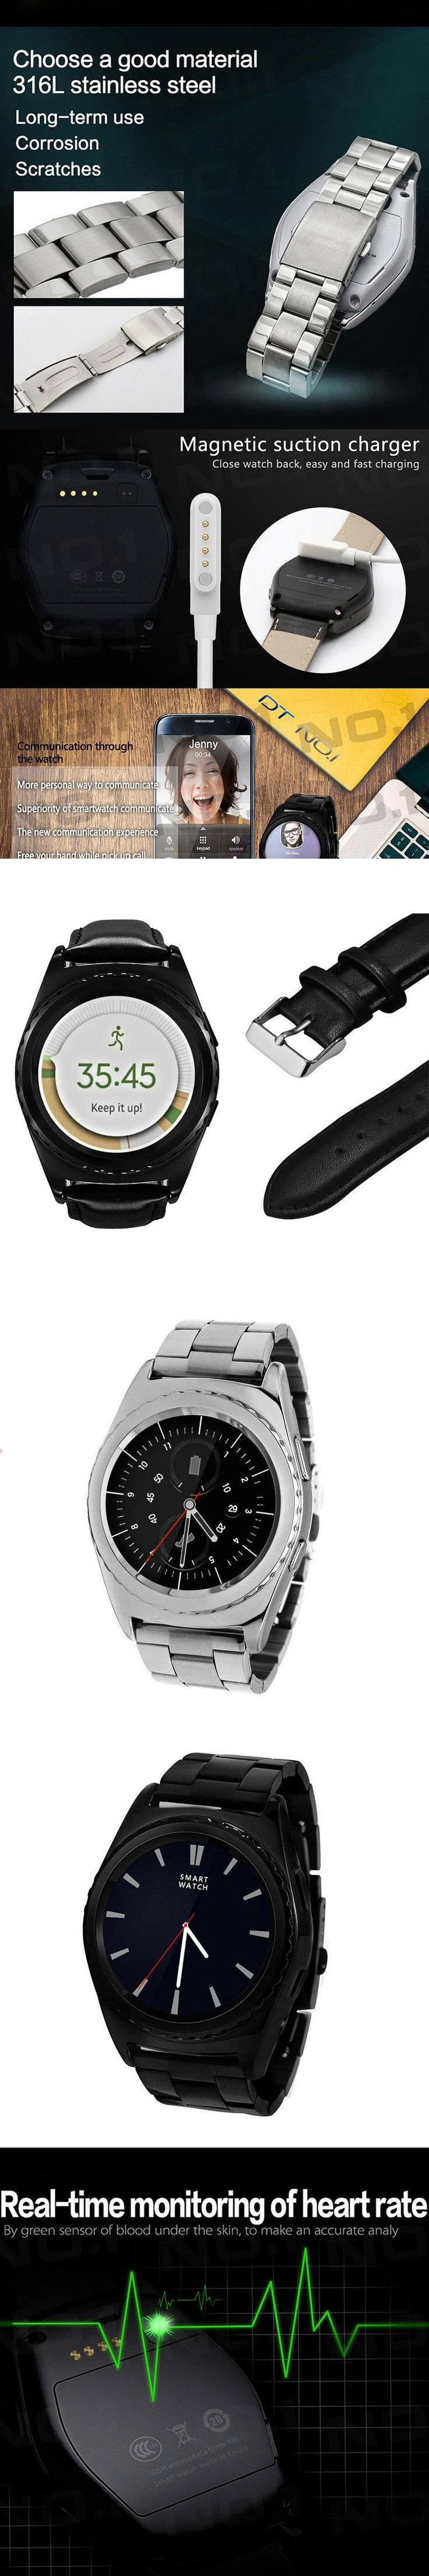 Gramlivin blog free download adidas 316l watch manual programs running fandeluxe Image collections